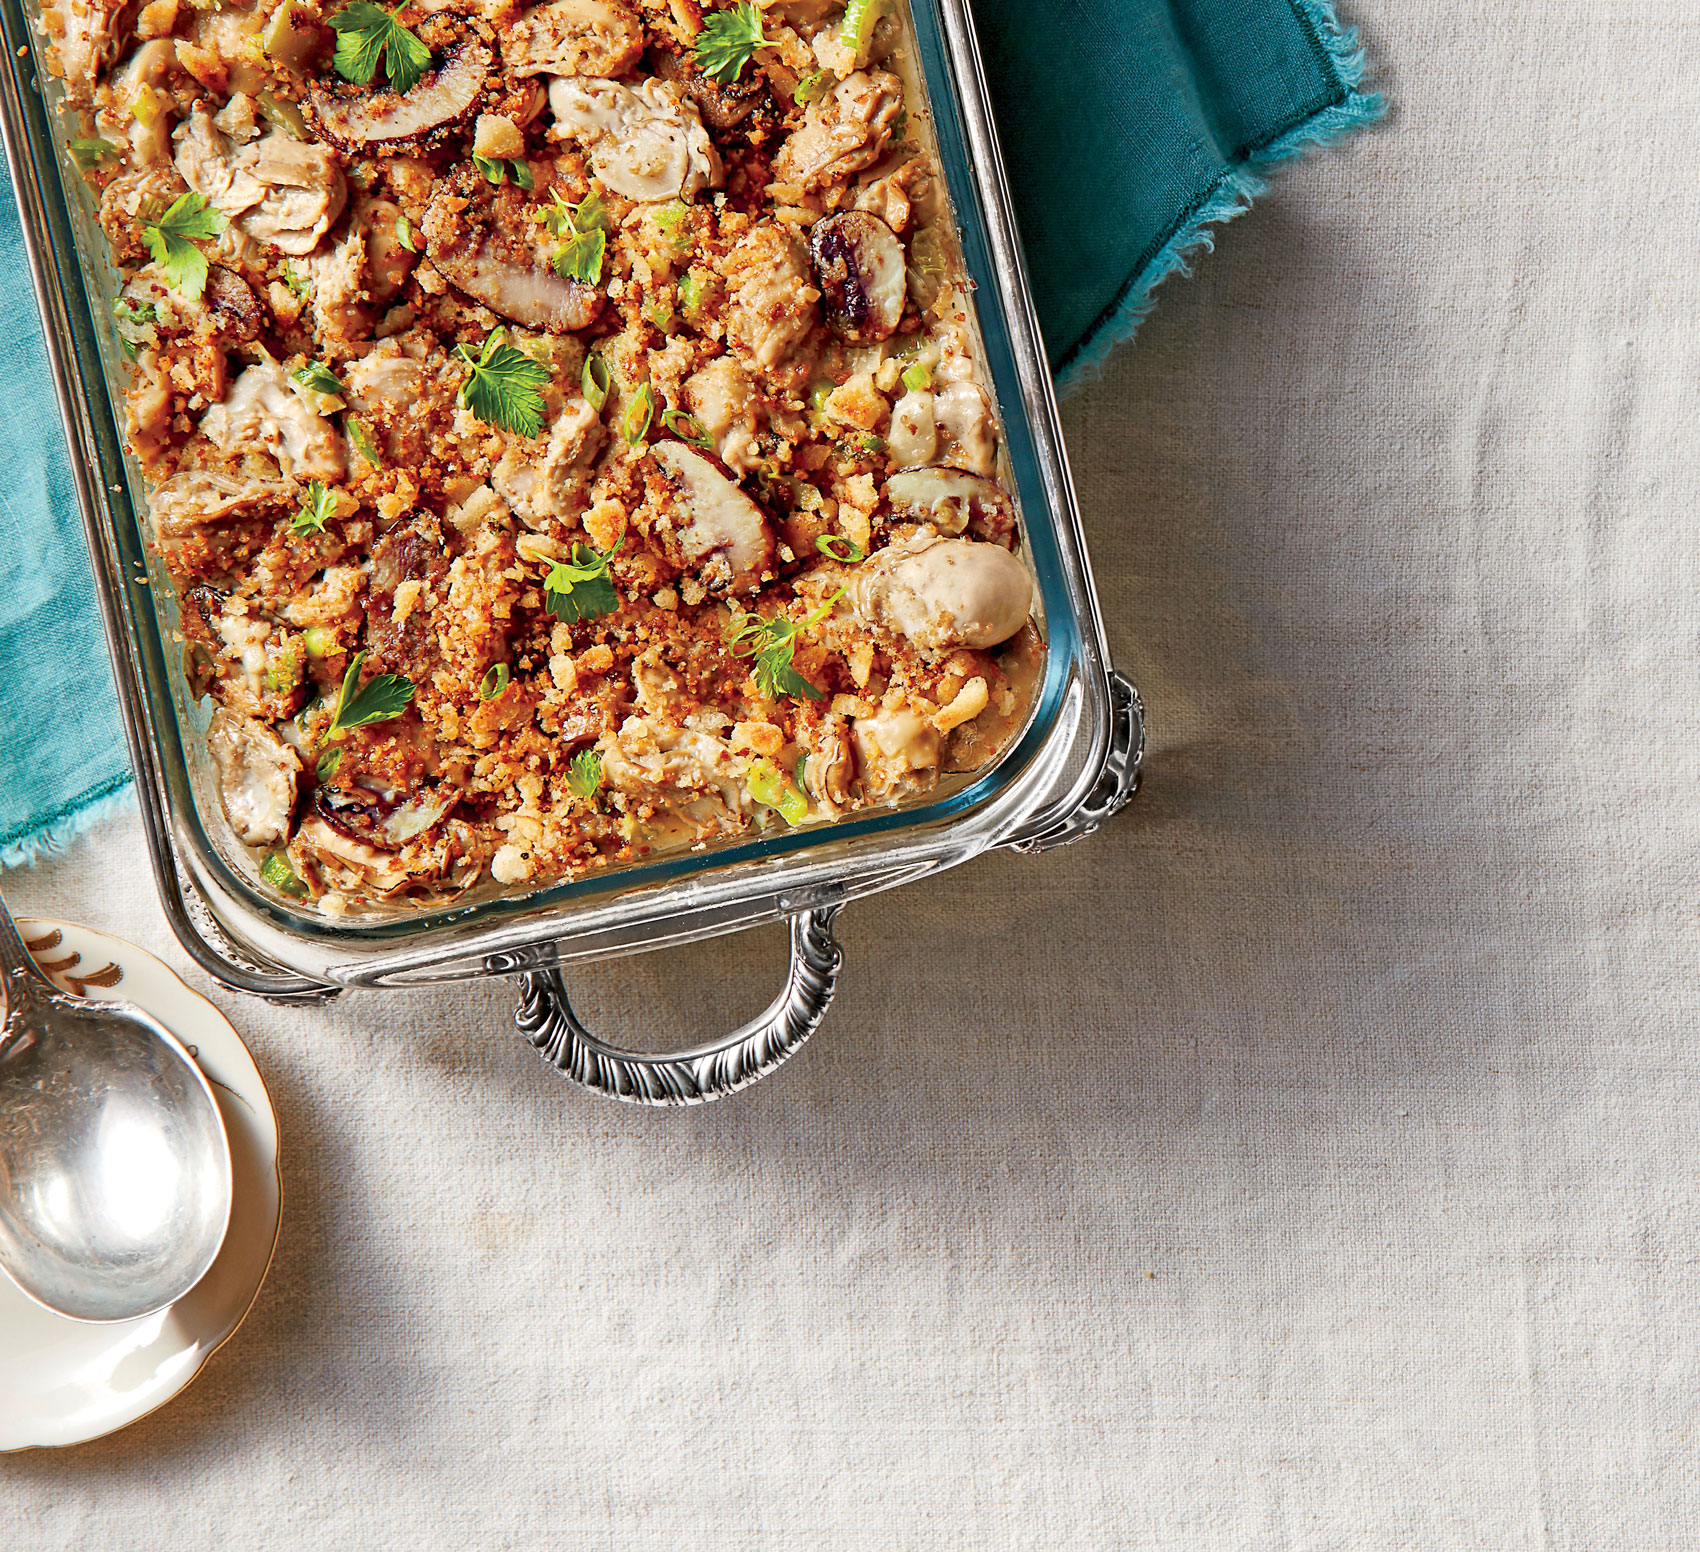 Oyster Casserole image